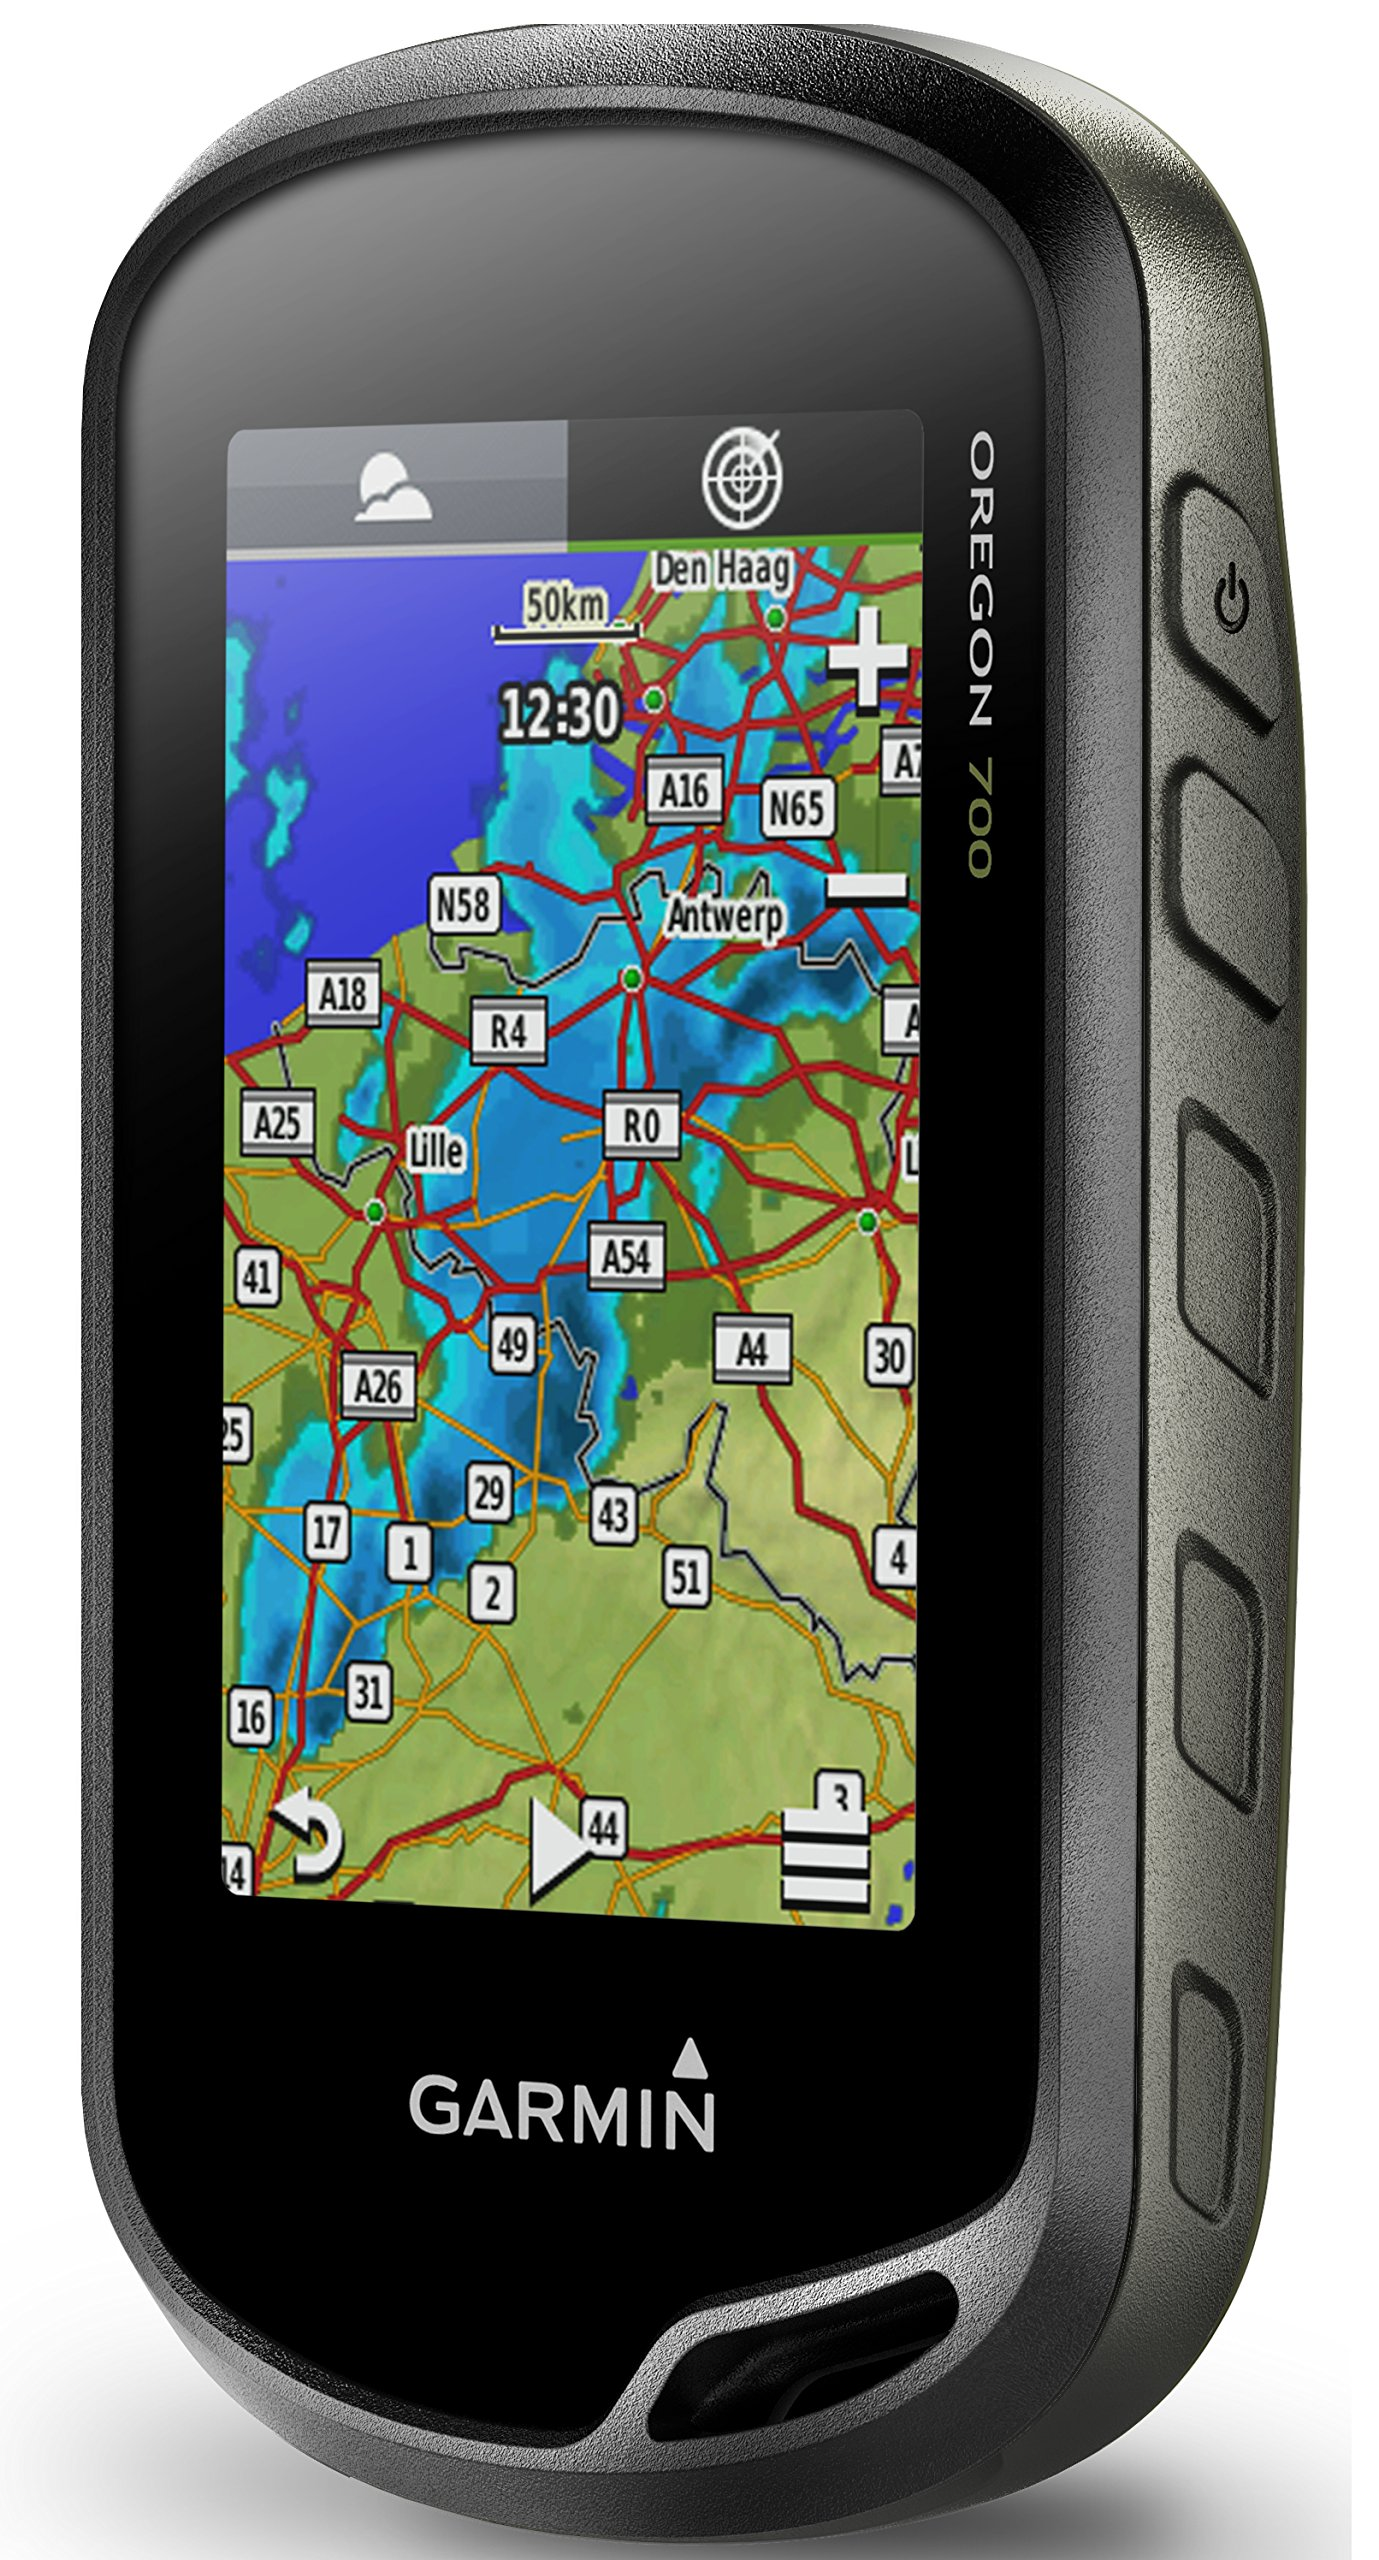 Garmin Oregon 700 Handheld GPS Navigation System 2